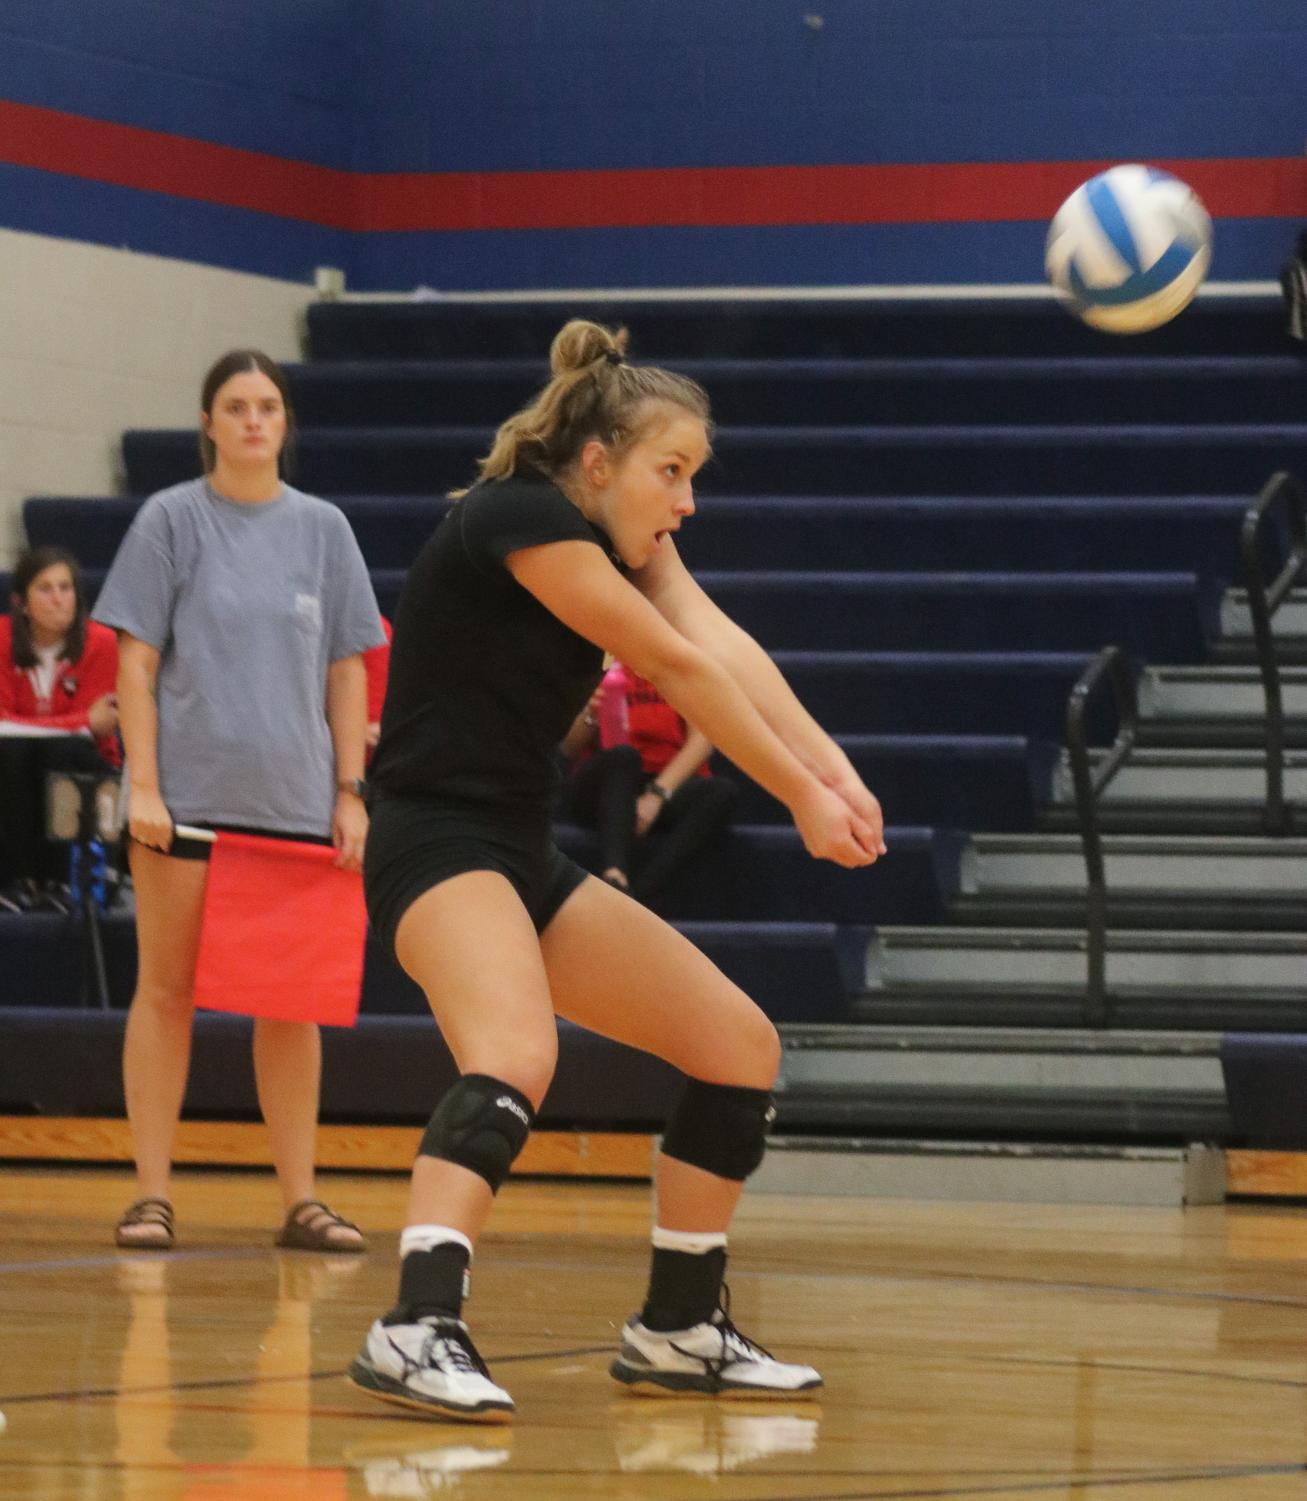 Varsity+volleyball+Andover+tournament+%28Photos+by+Sara+Brown%29